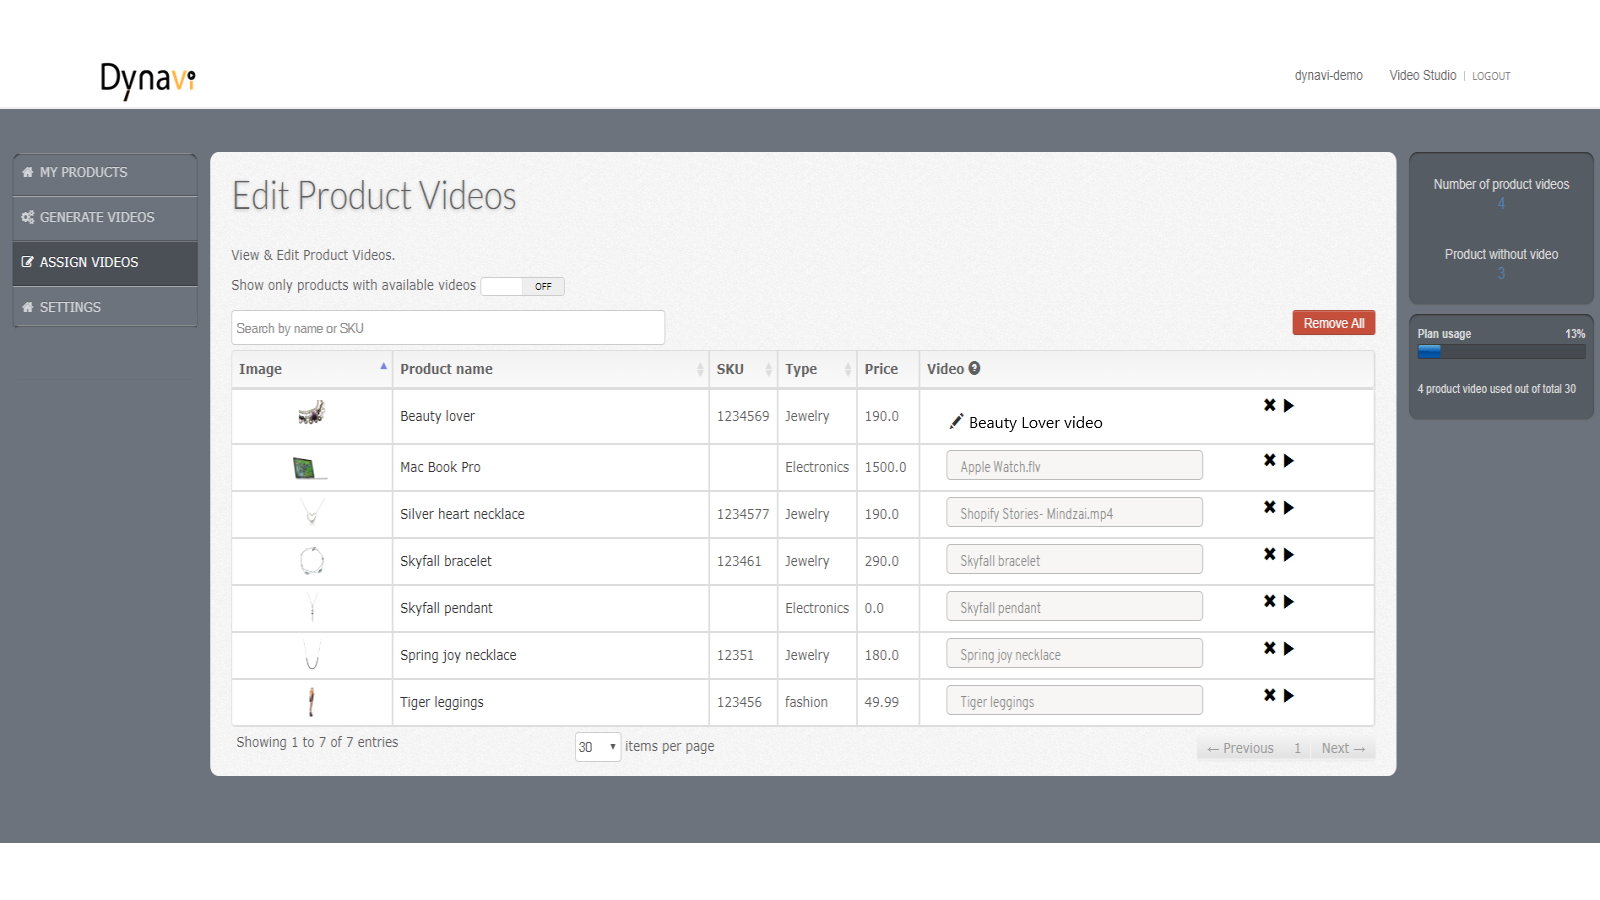 Assign videos to product